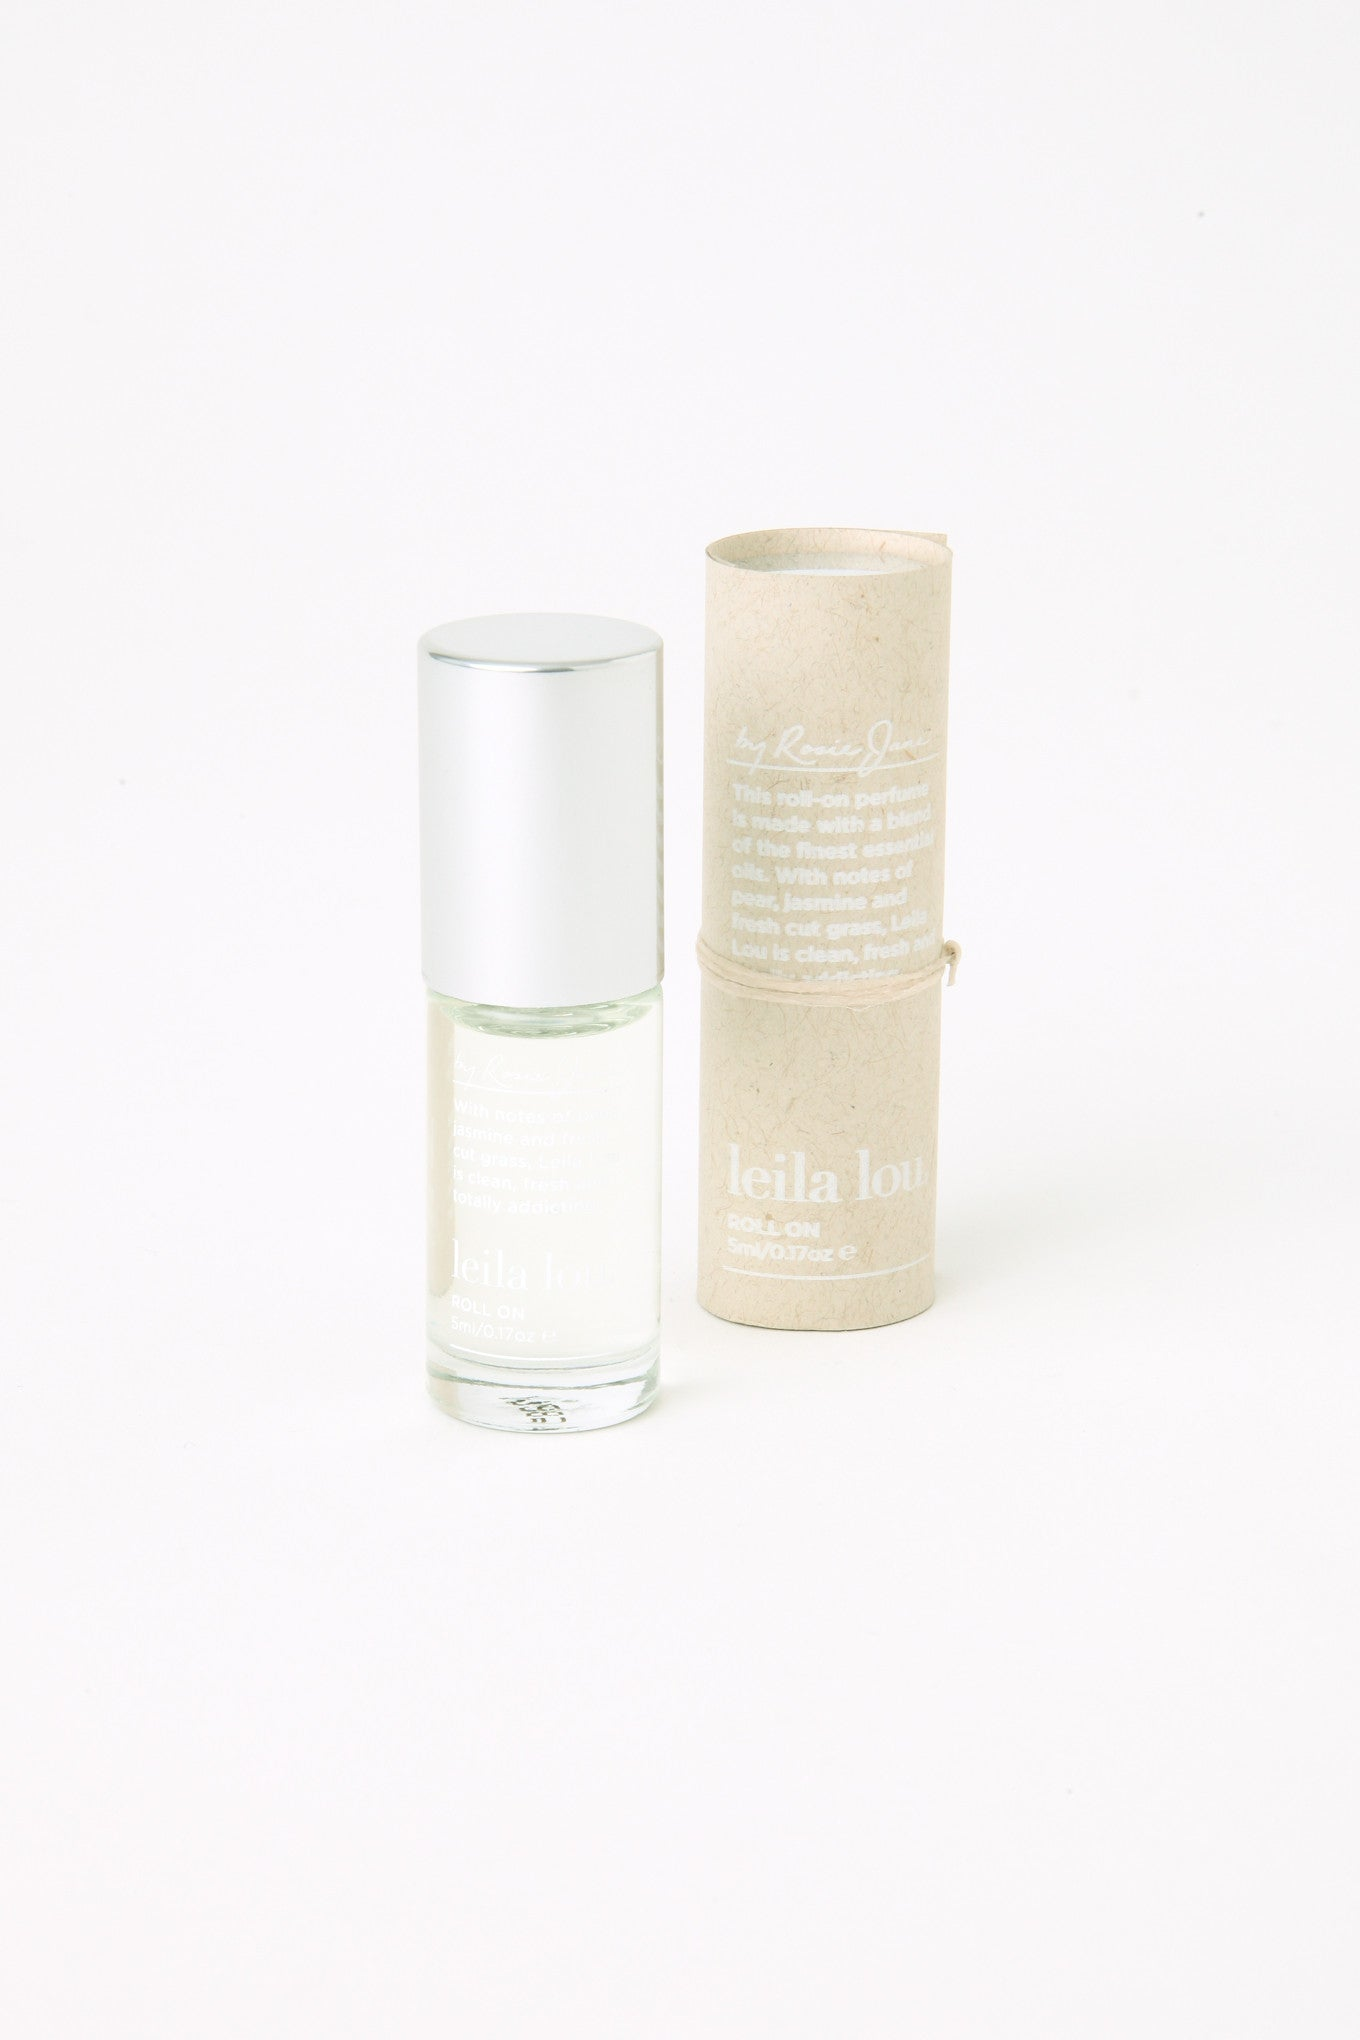 By Rosie Jane Leila Lou Perfume Oil